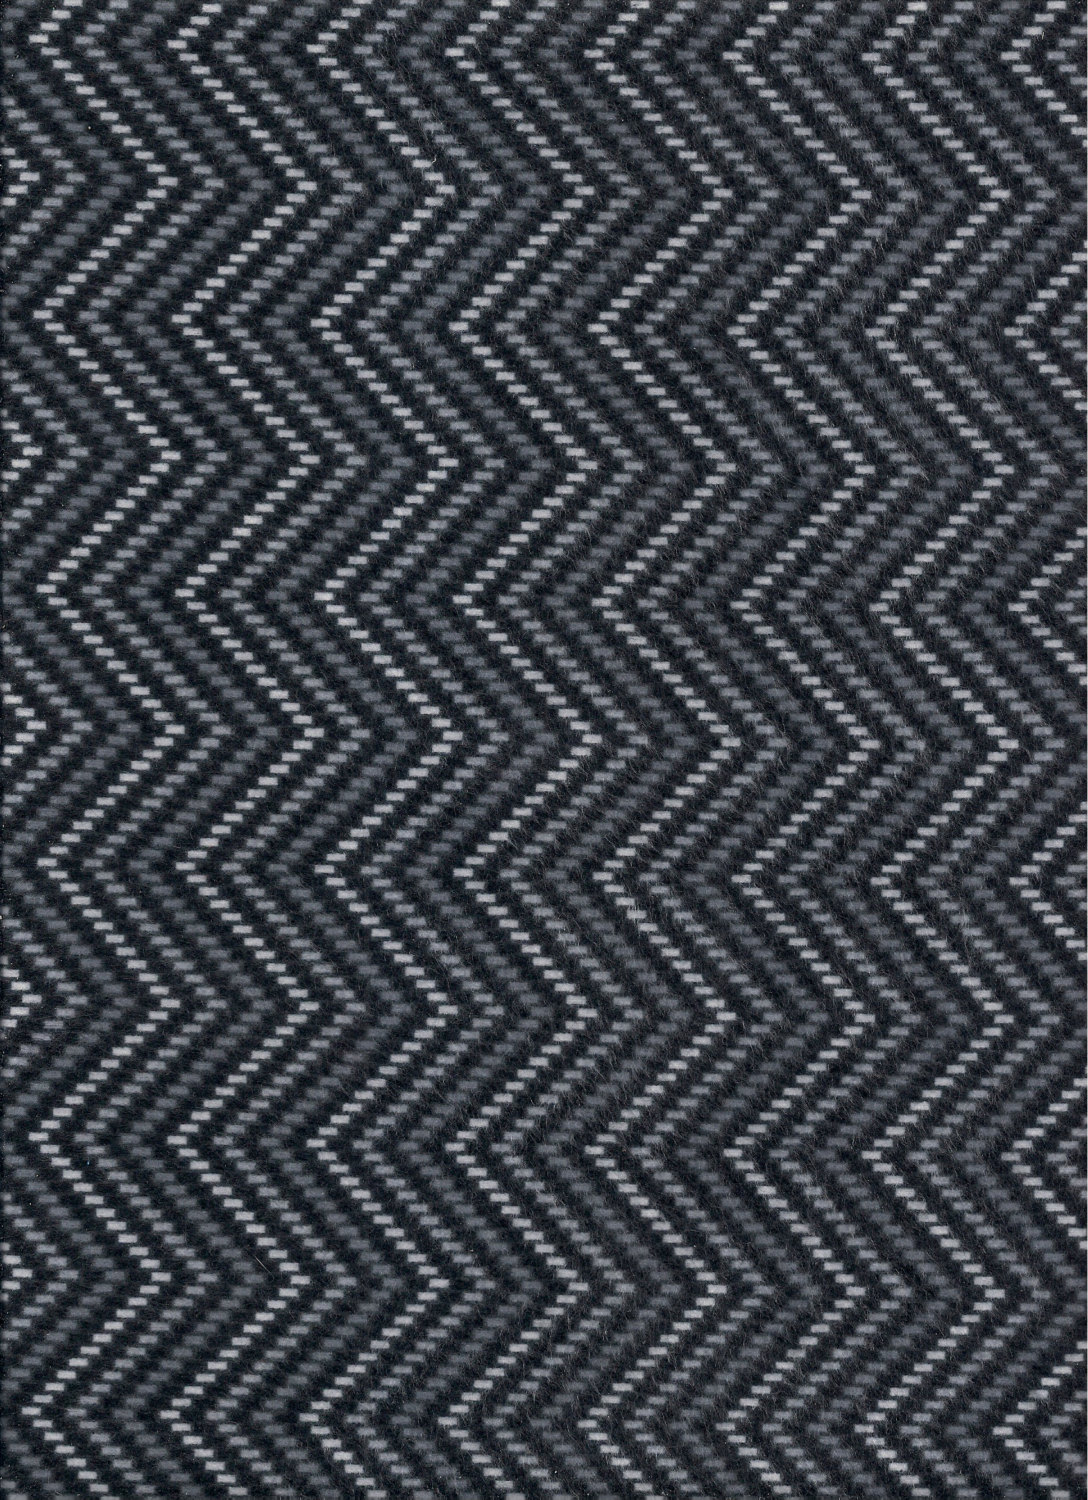 AAILOR-CT1628-BK 45'' Timeless Treasures Gray/Black/White Zig-Zag Flannel